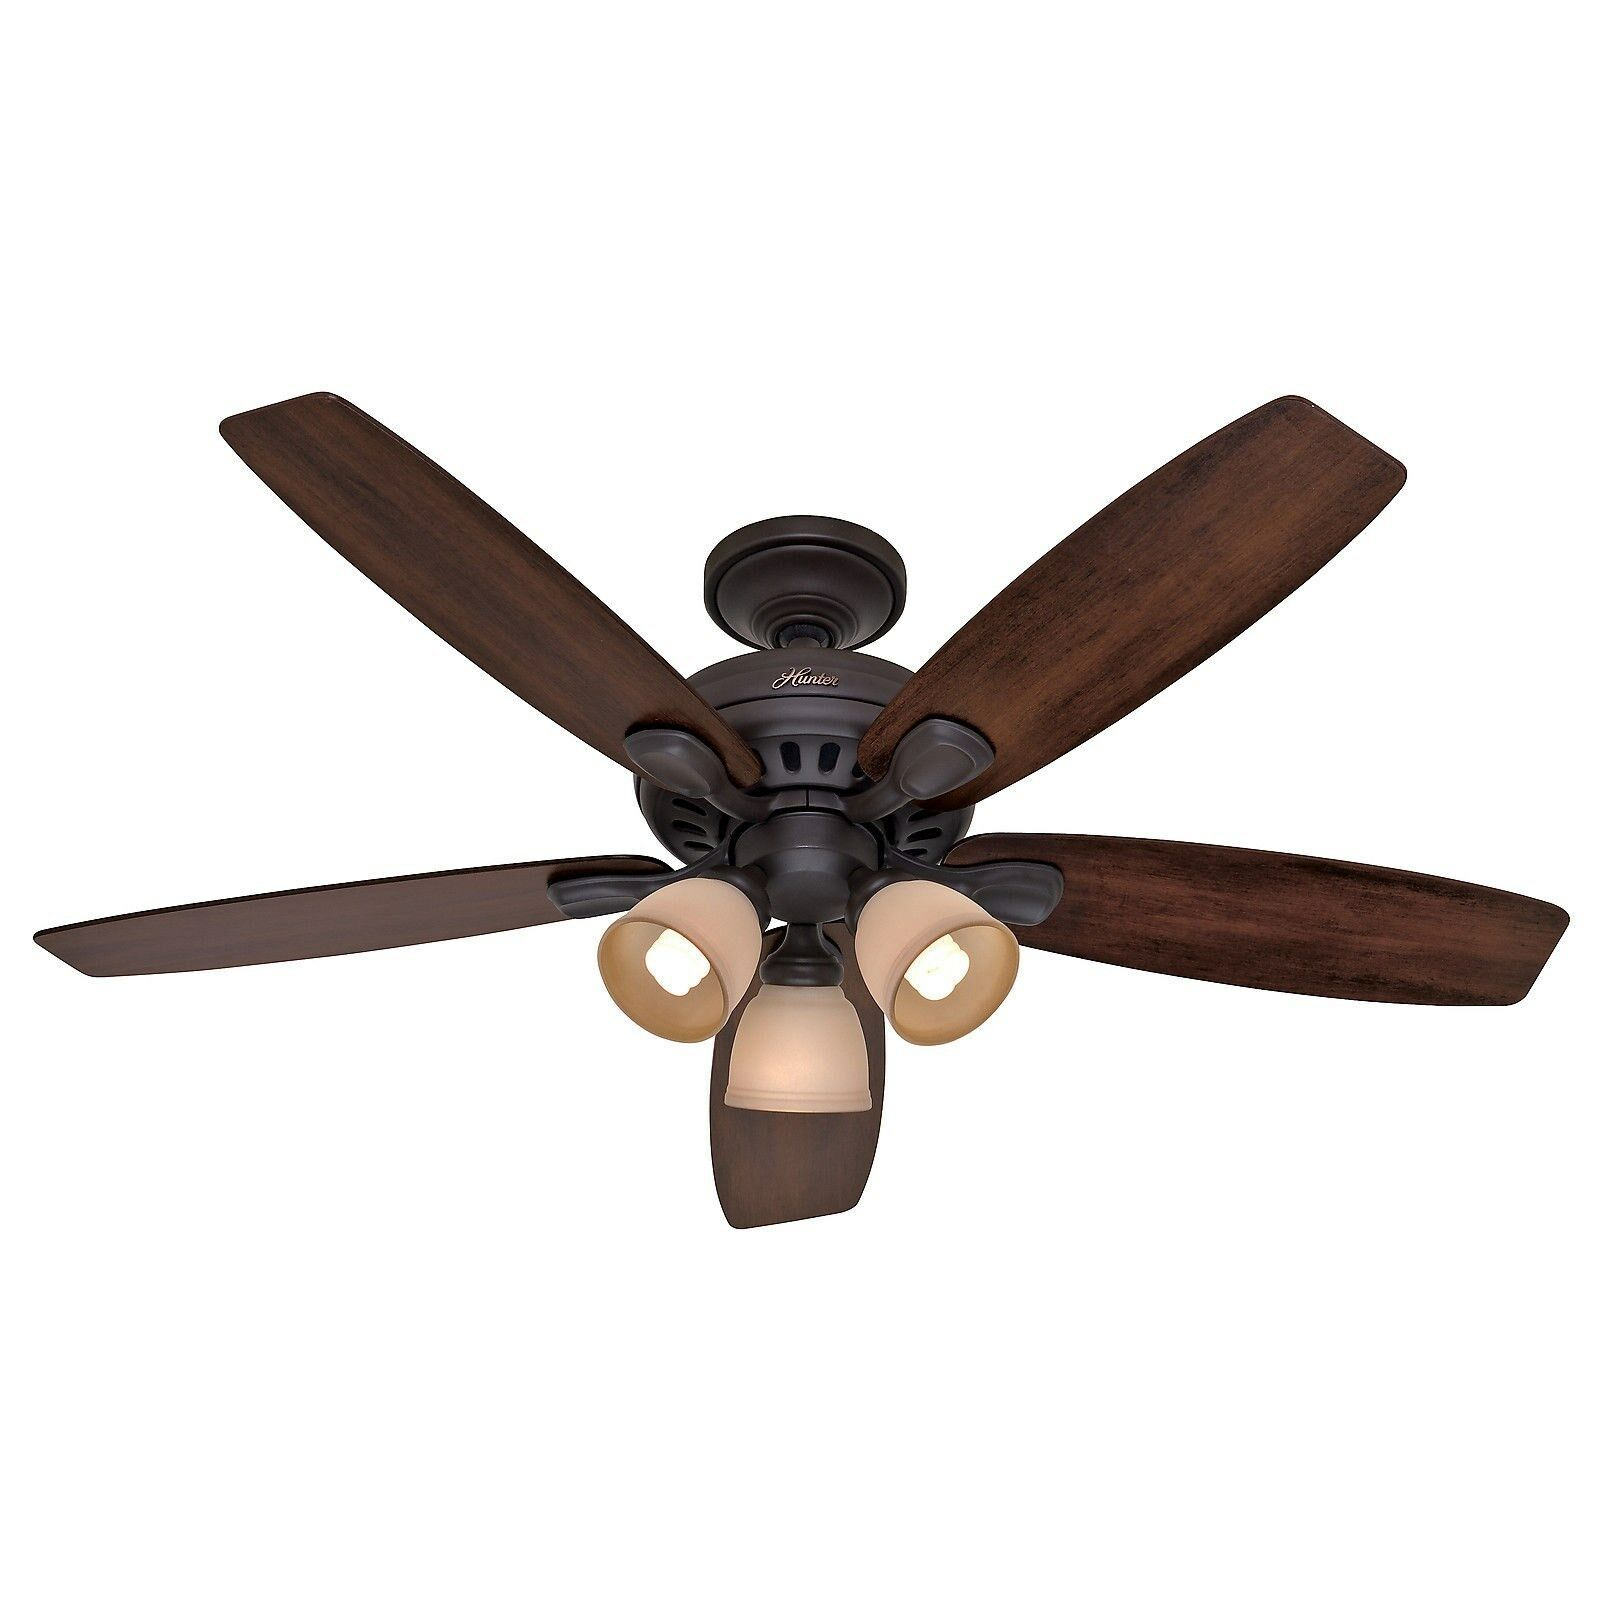 hunter 52 in new bronze ceiling fan with light remote control ebay. Black Bedroom Furniture Sets. Home Design Ideas